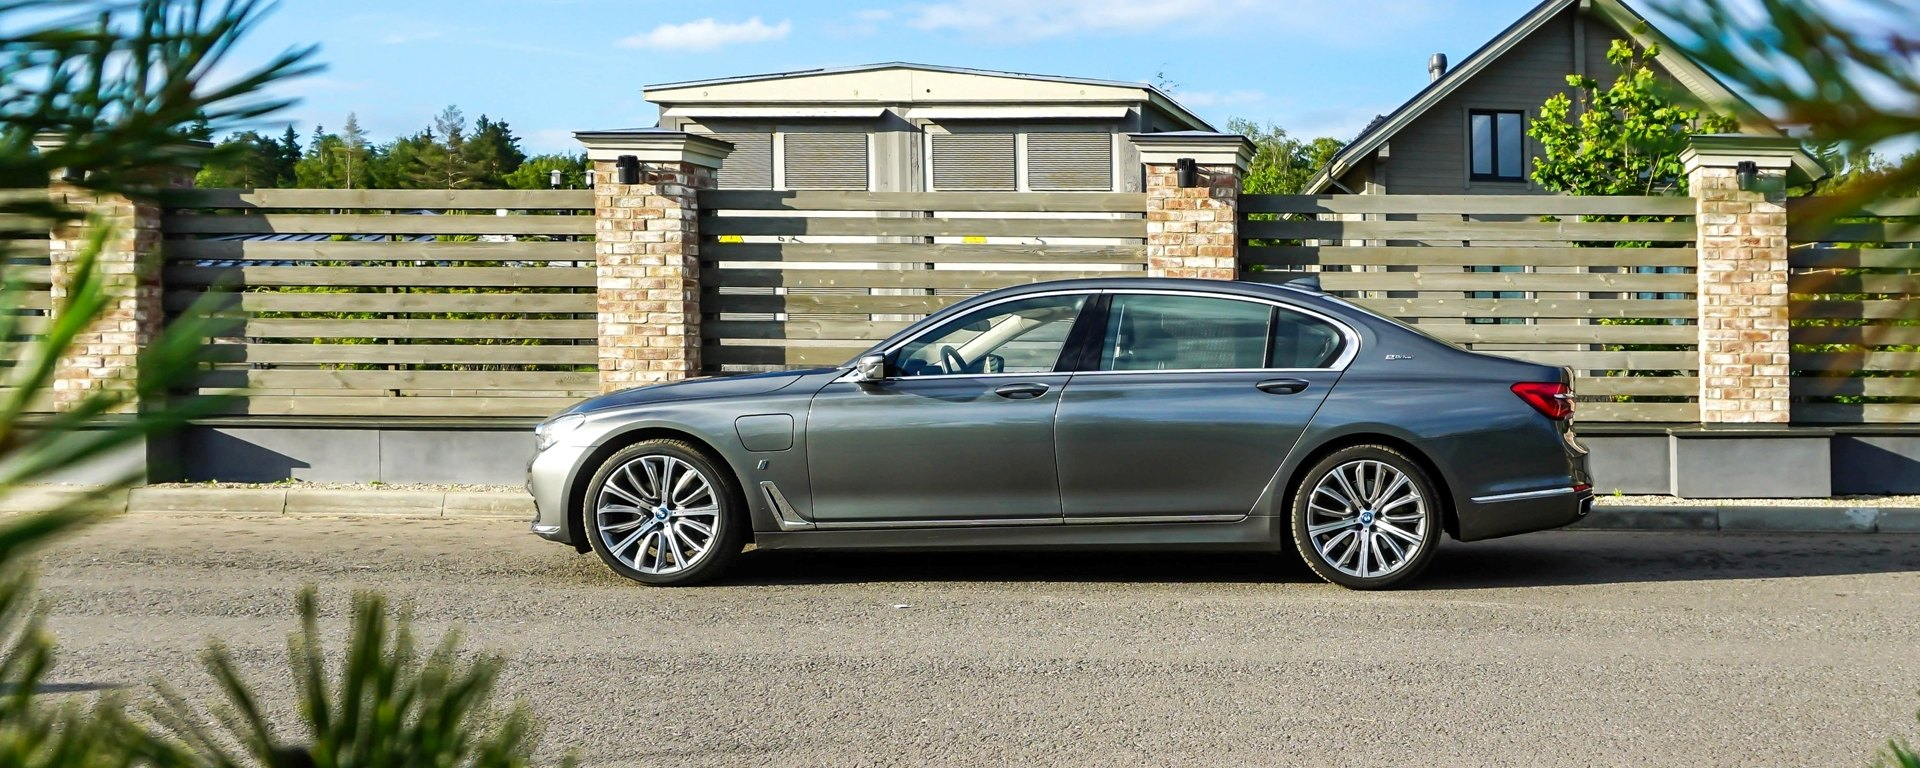 Экология и стереотипы: тест BMW 740Le xDrive iPerformance